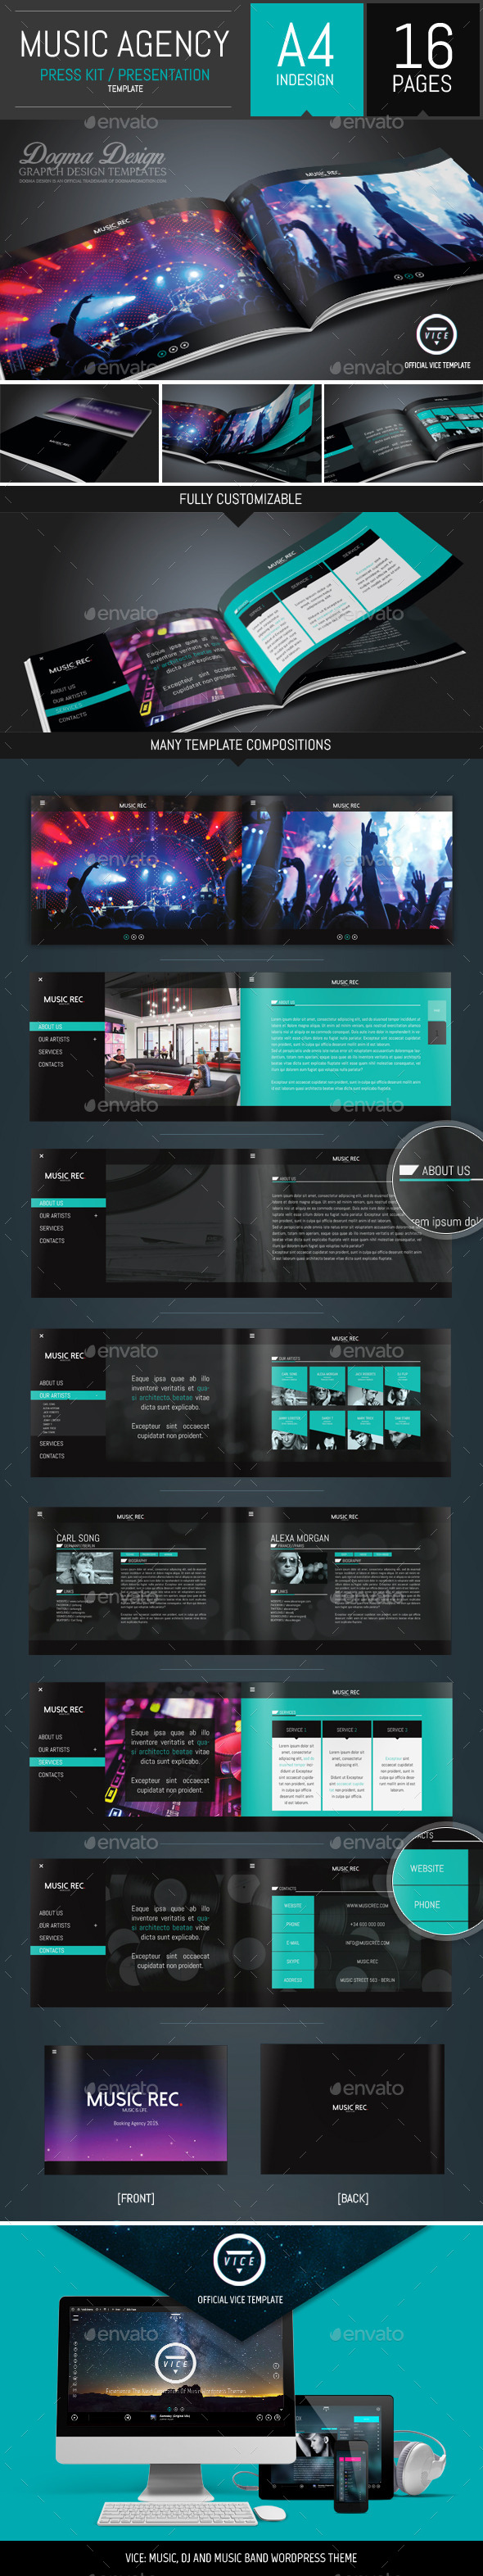 Vice: Dj and Booking Agency Portfolio Brochure - Brochures Print Templates